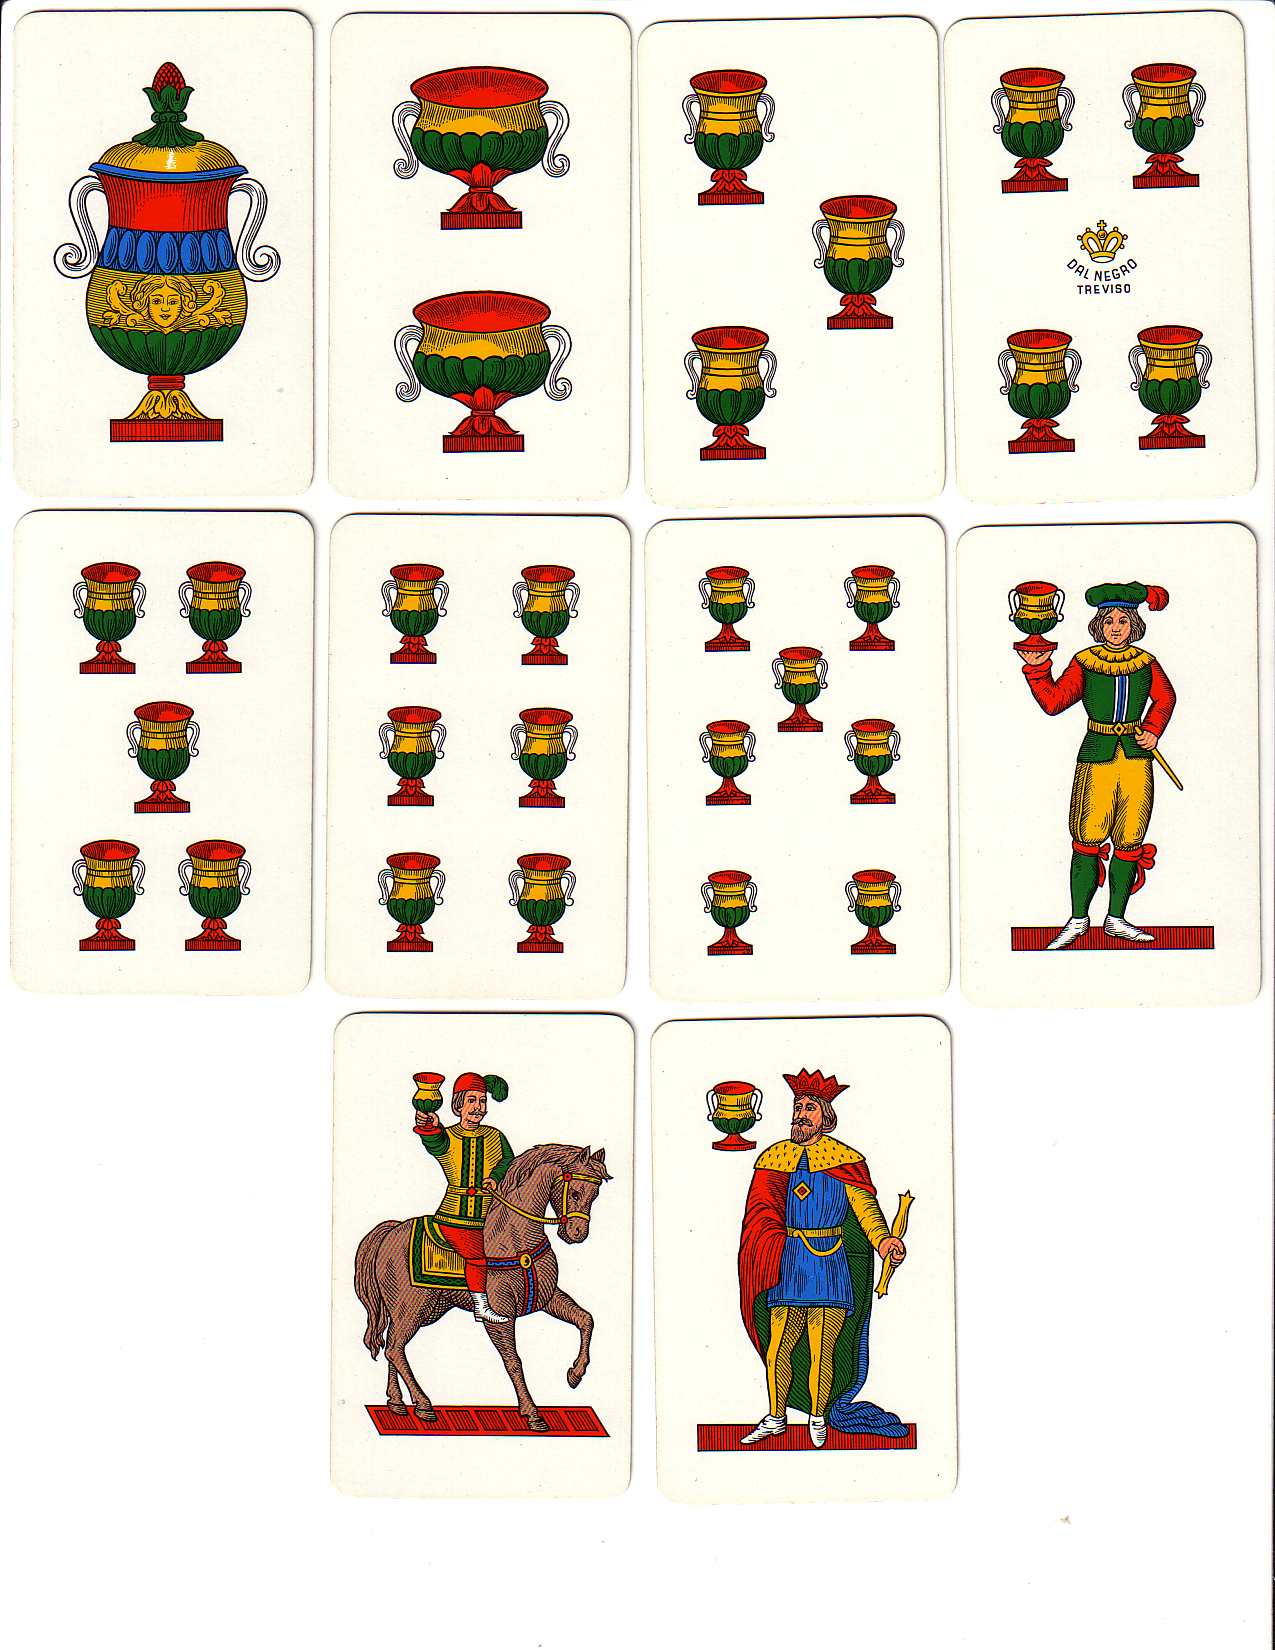 Super File:Carte da gioco napoletane coppe.jpg - Wikipedia TT45